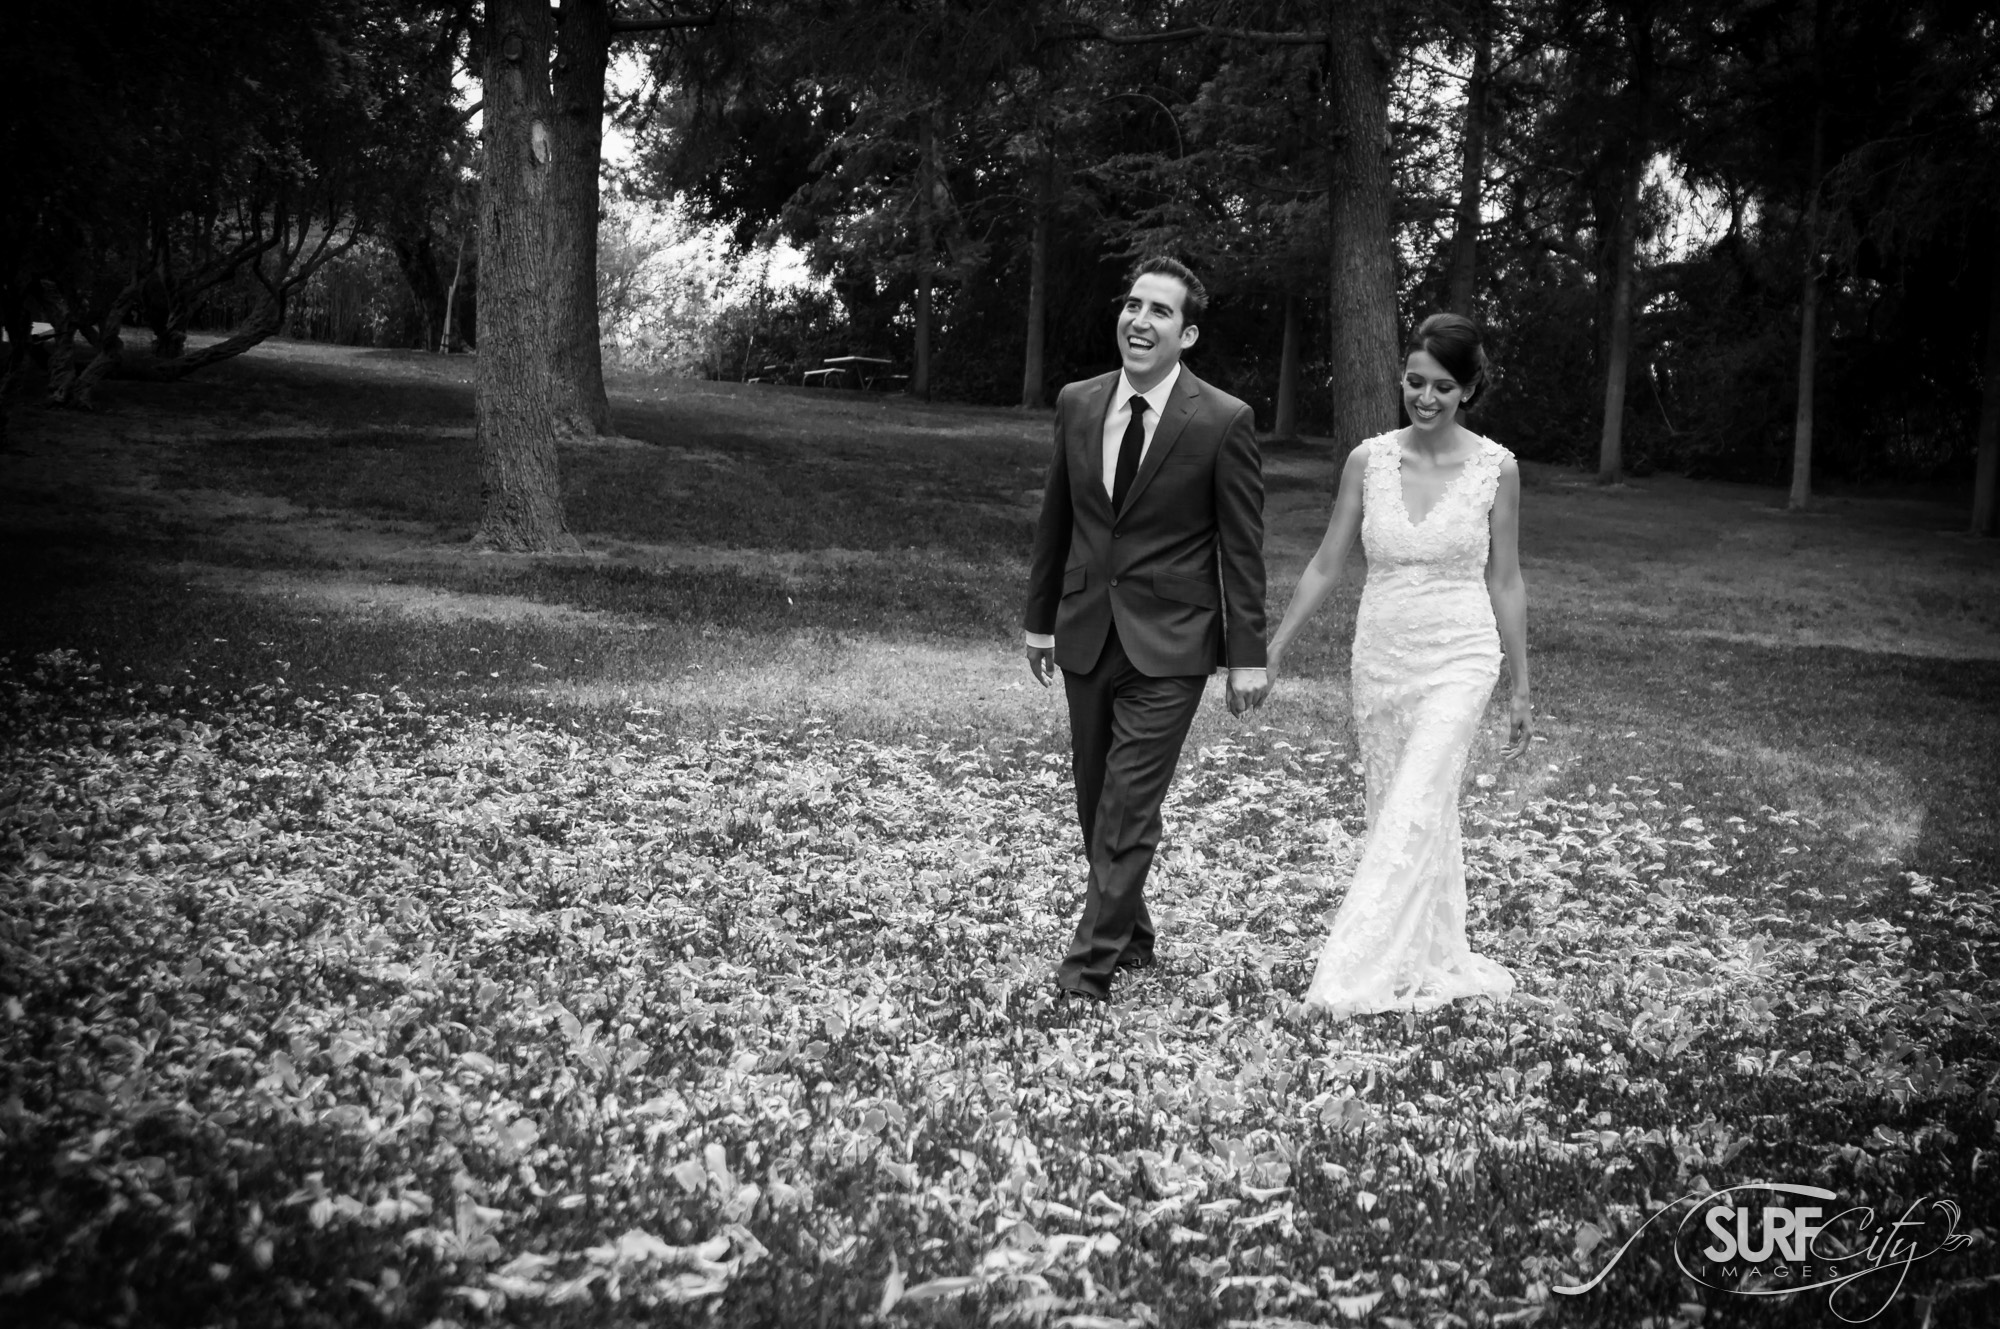 Bride & groom wedding portraits